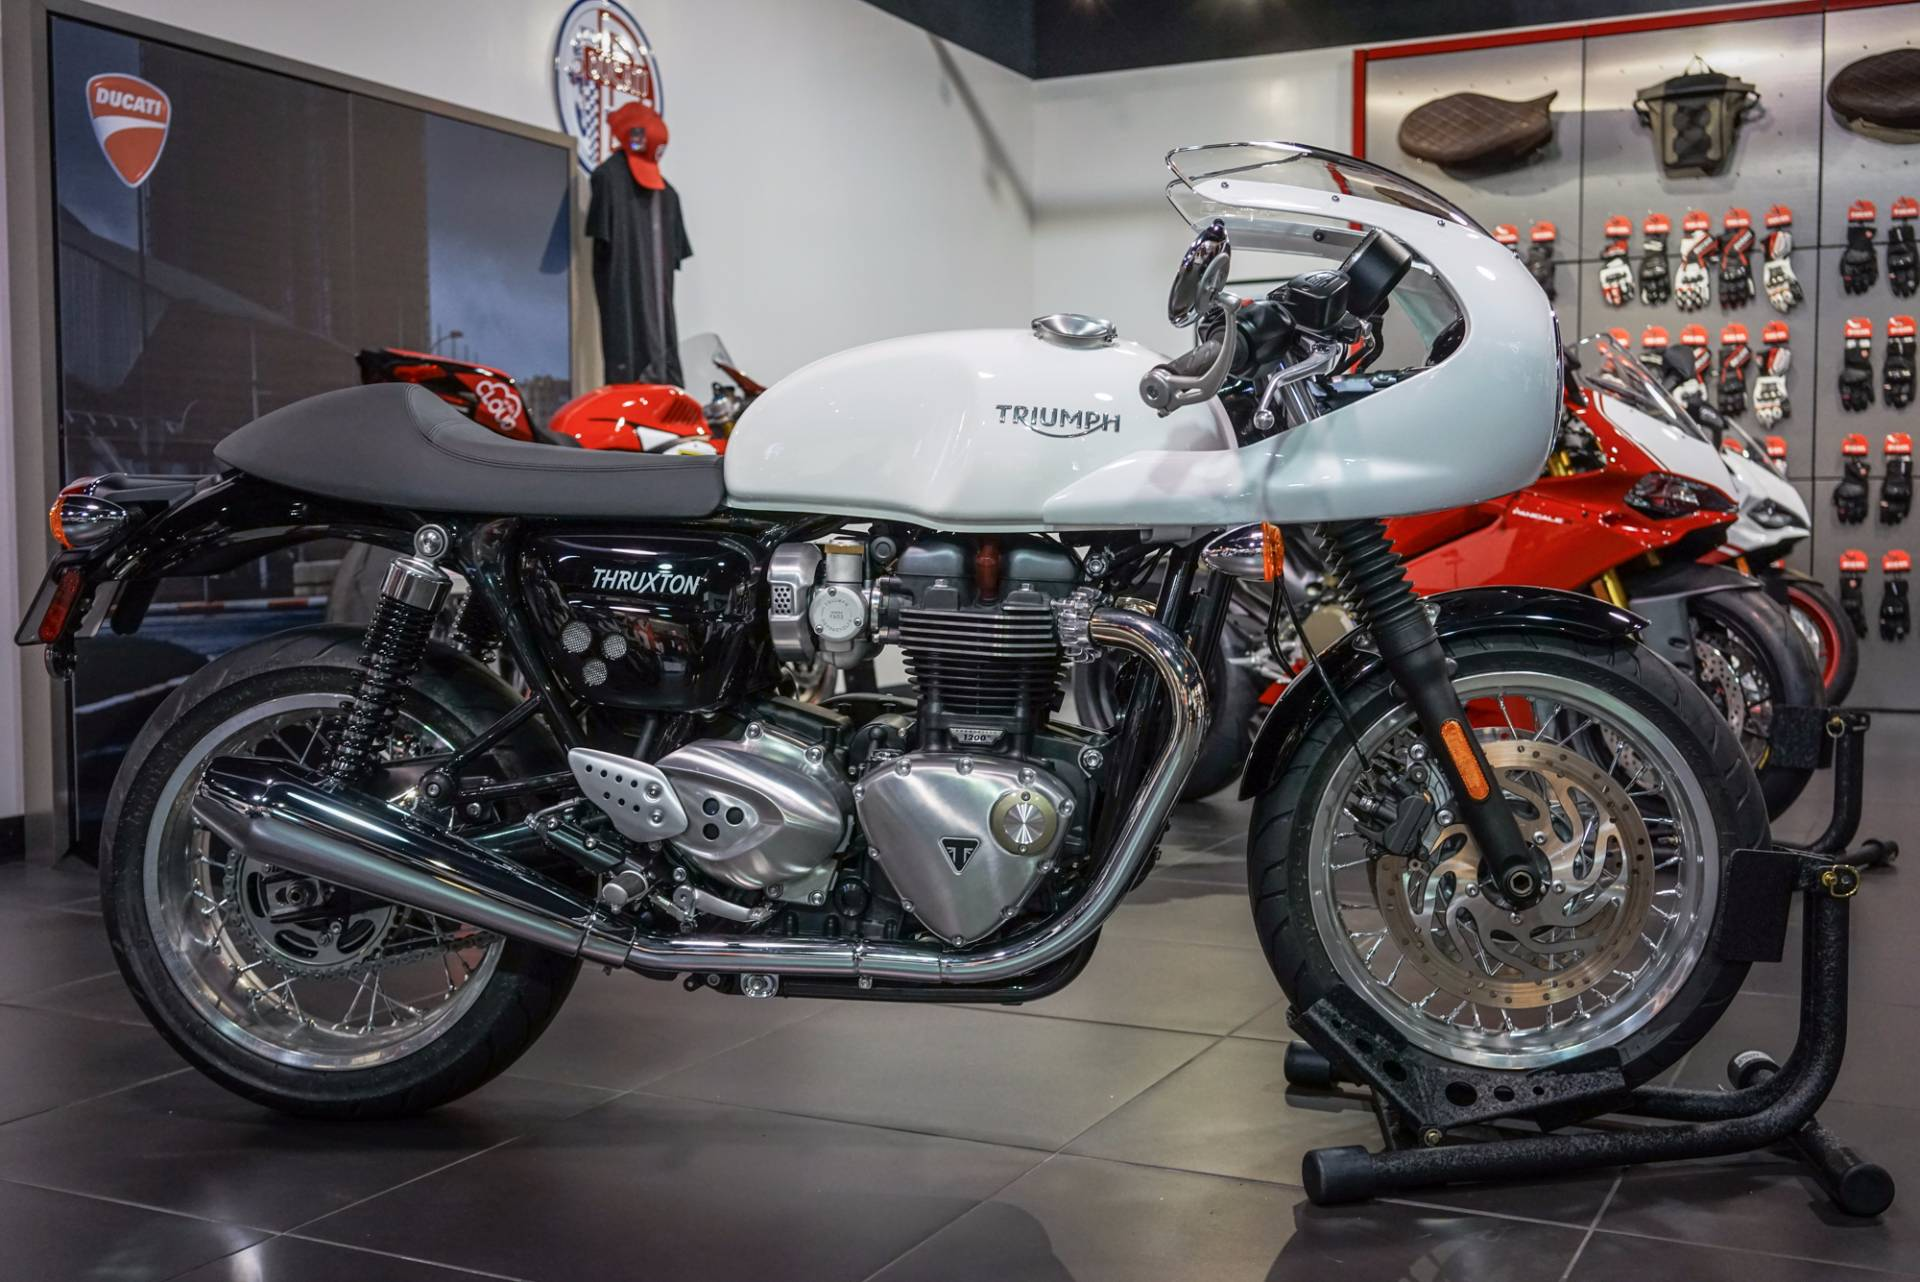 The all-new Thruxton takes the modern classic sports bike to a new level combining beautifully sh